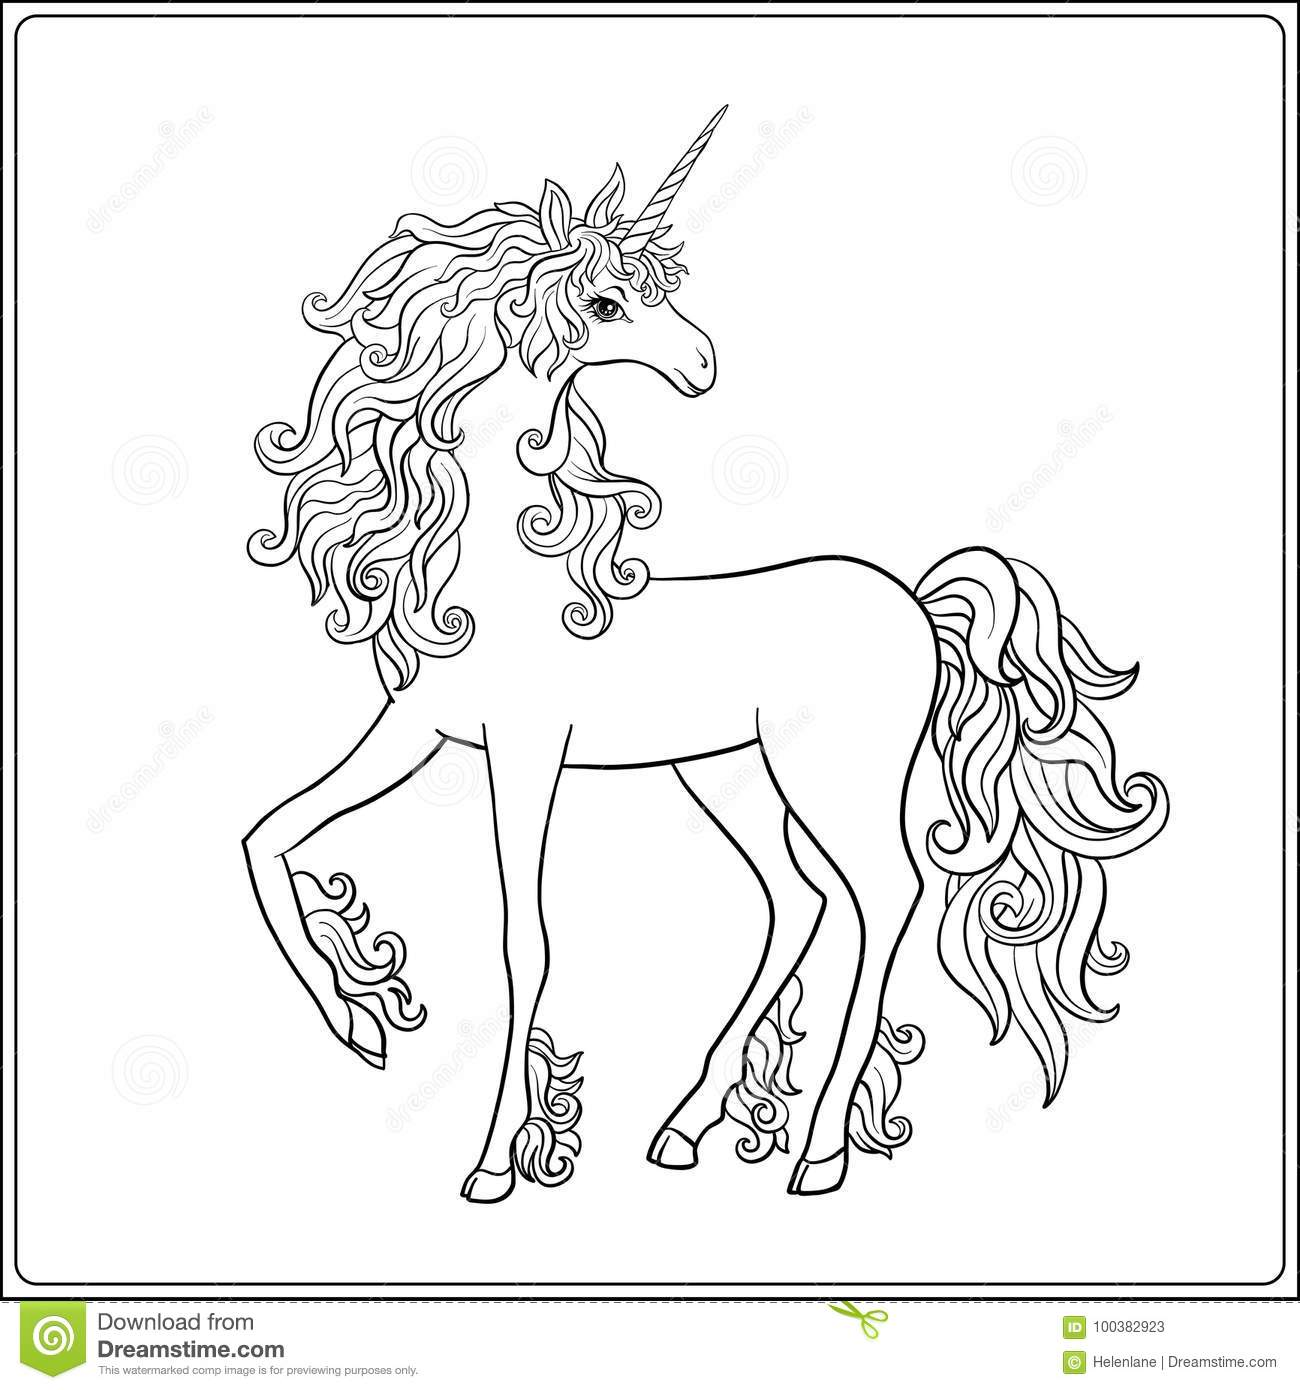 Outline drawings for colouring